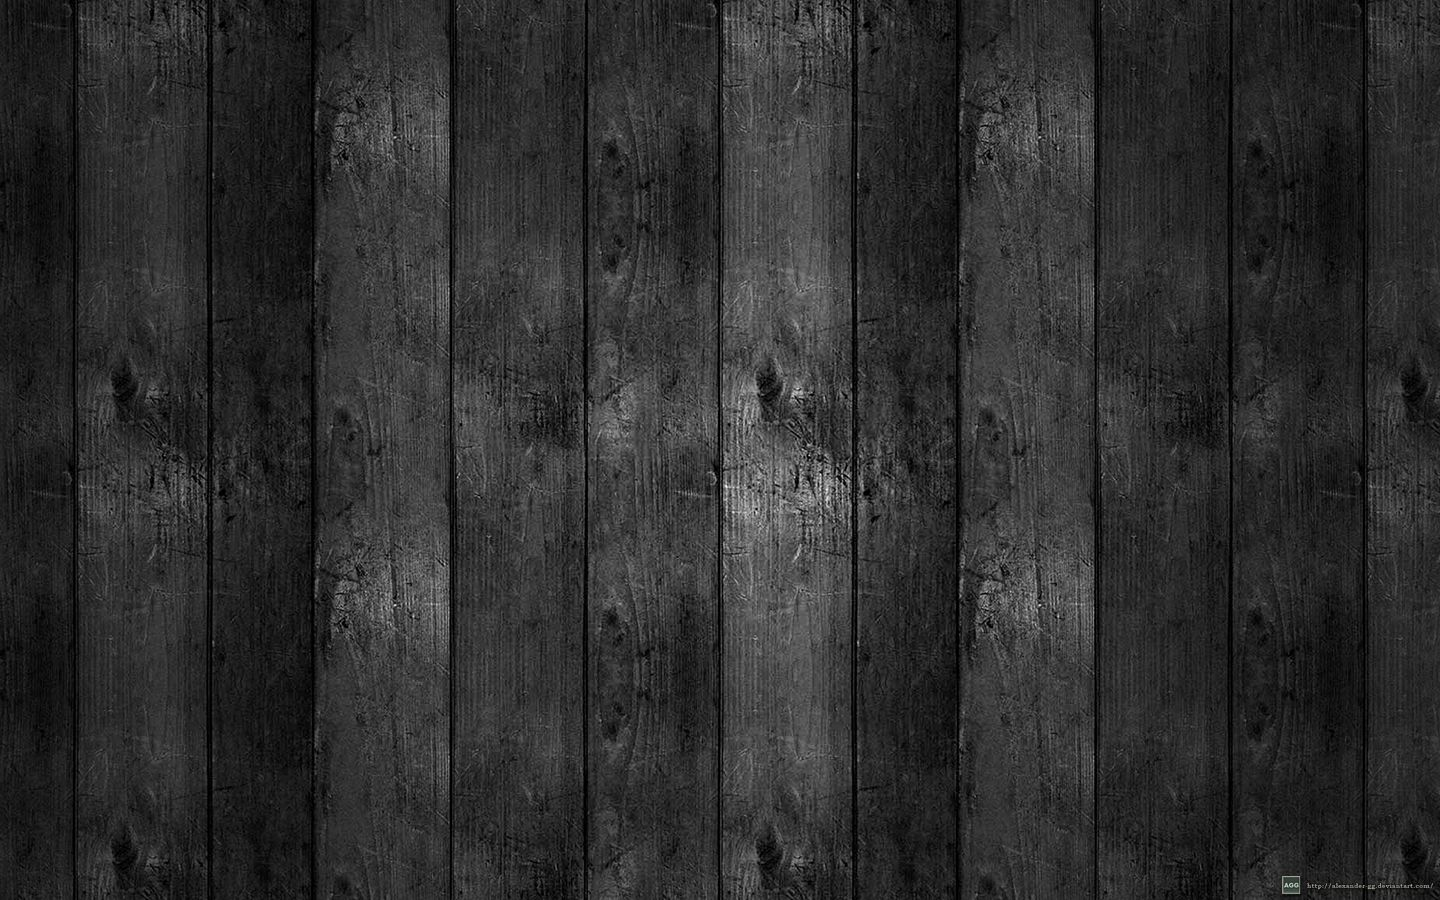 Wood dark background texture wallpaper background iphone 6 - Black Wood Stain Background How To Stain Wood Black Jeffrey Campbell Foxy Wood